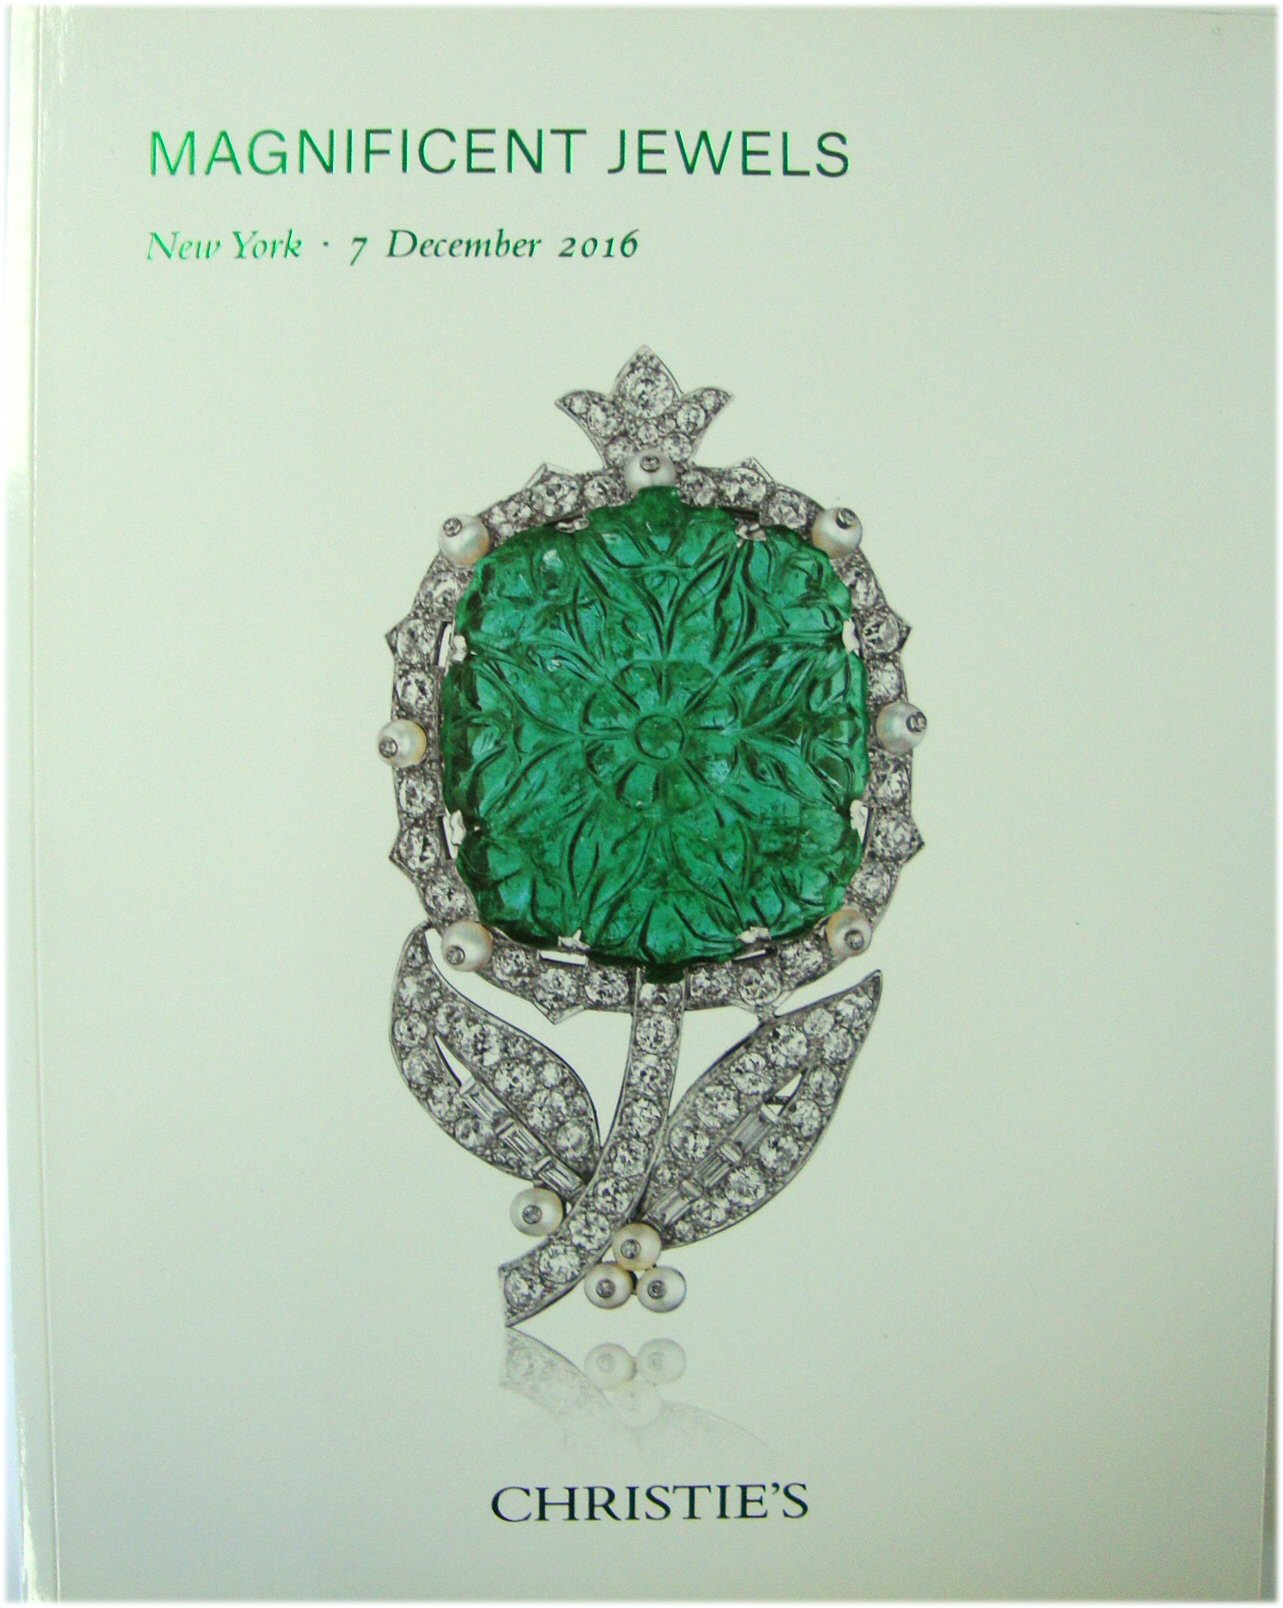 Image for Christie's Sale 12183: Magnificent Jewels, 7 December 2016